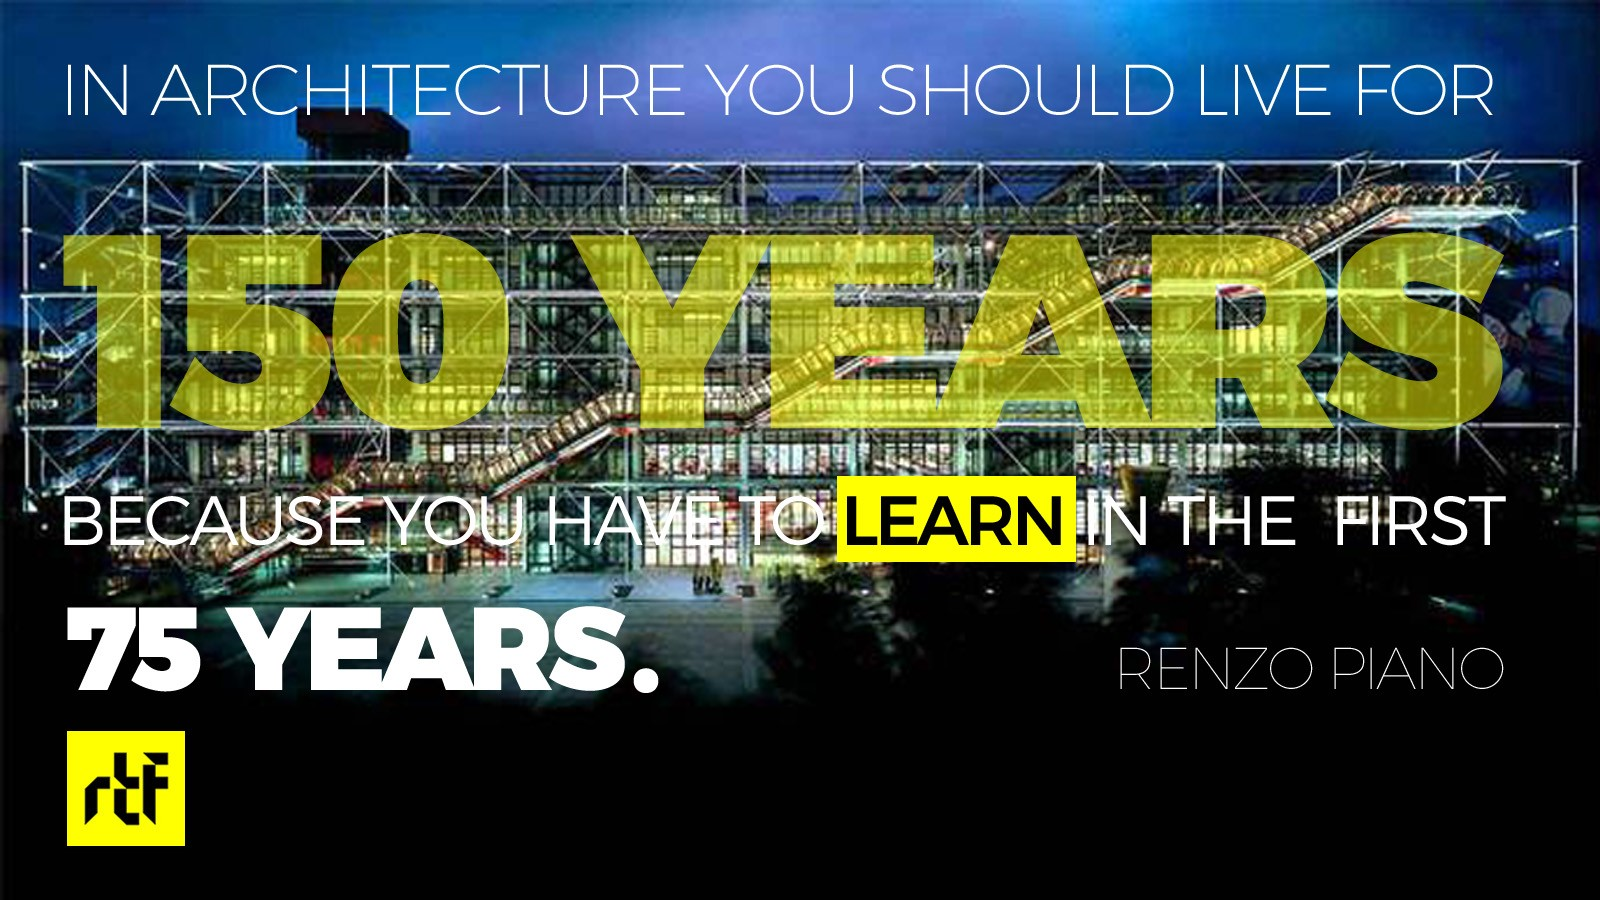 The 10 Keys to becoming a great Architect - Begin as early as possible